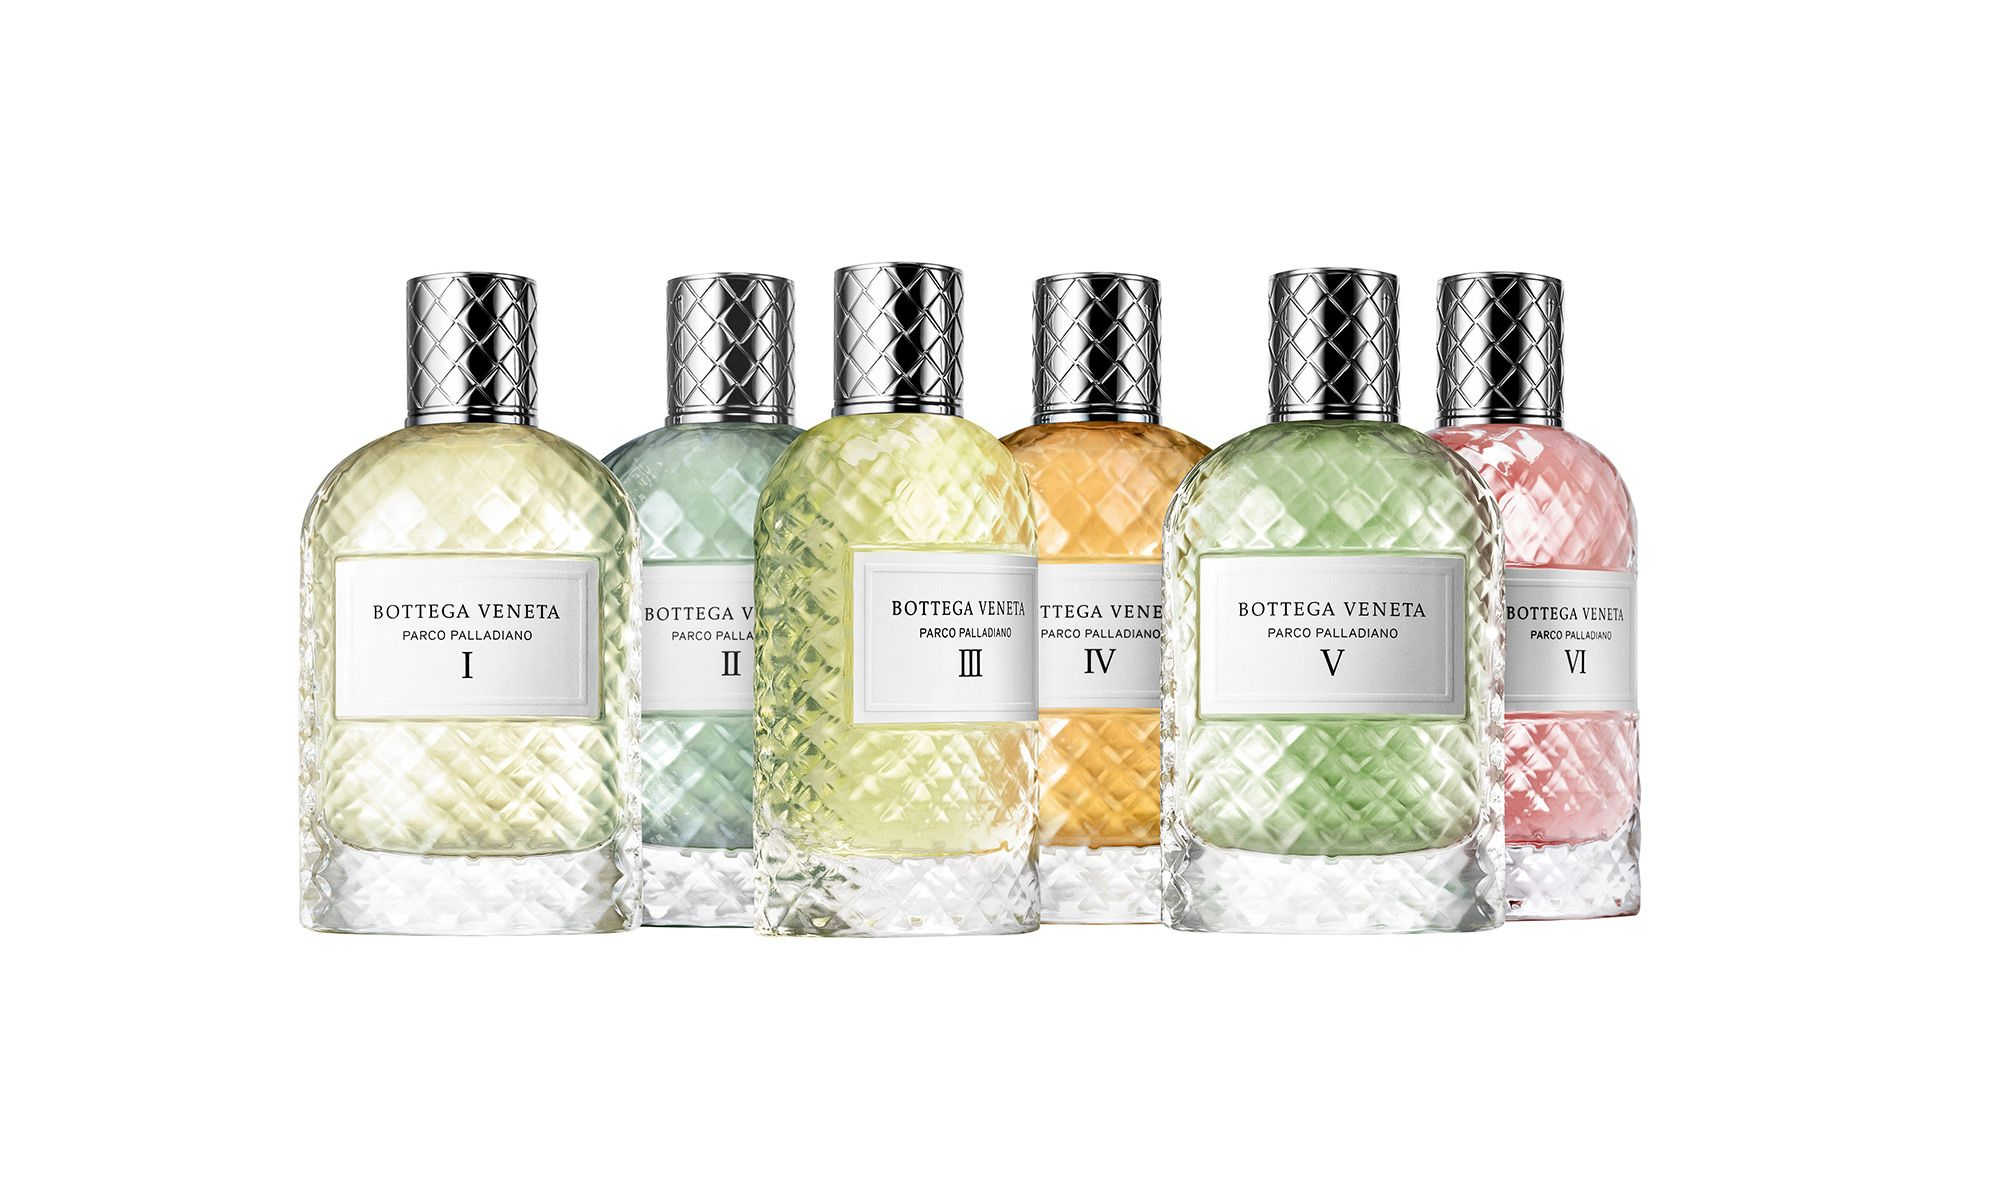 Bottega Veneta Captures Italian Landscapes and Cultural Heritage in New Fragrance Collection